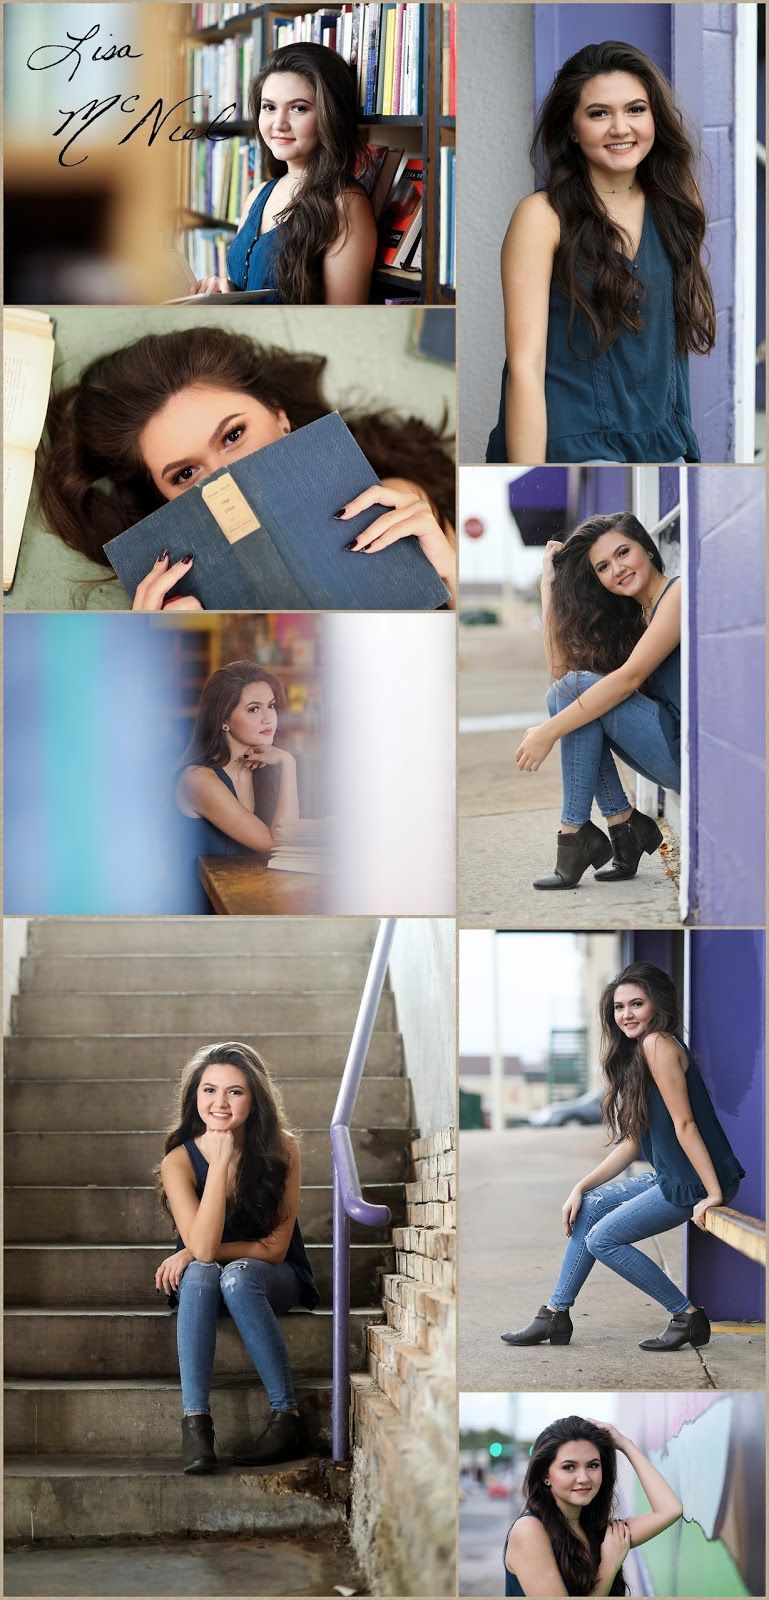 Senior pictures for the Academic by Flower Mound